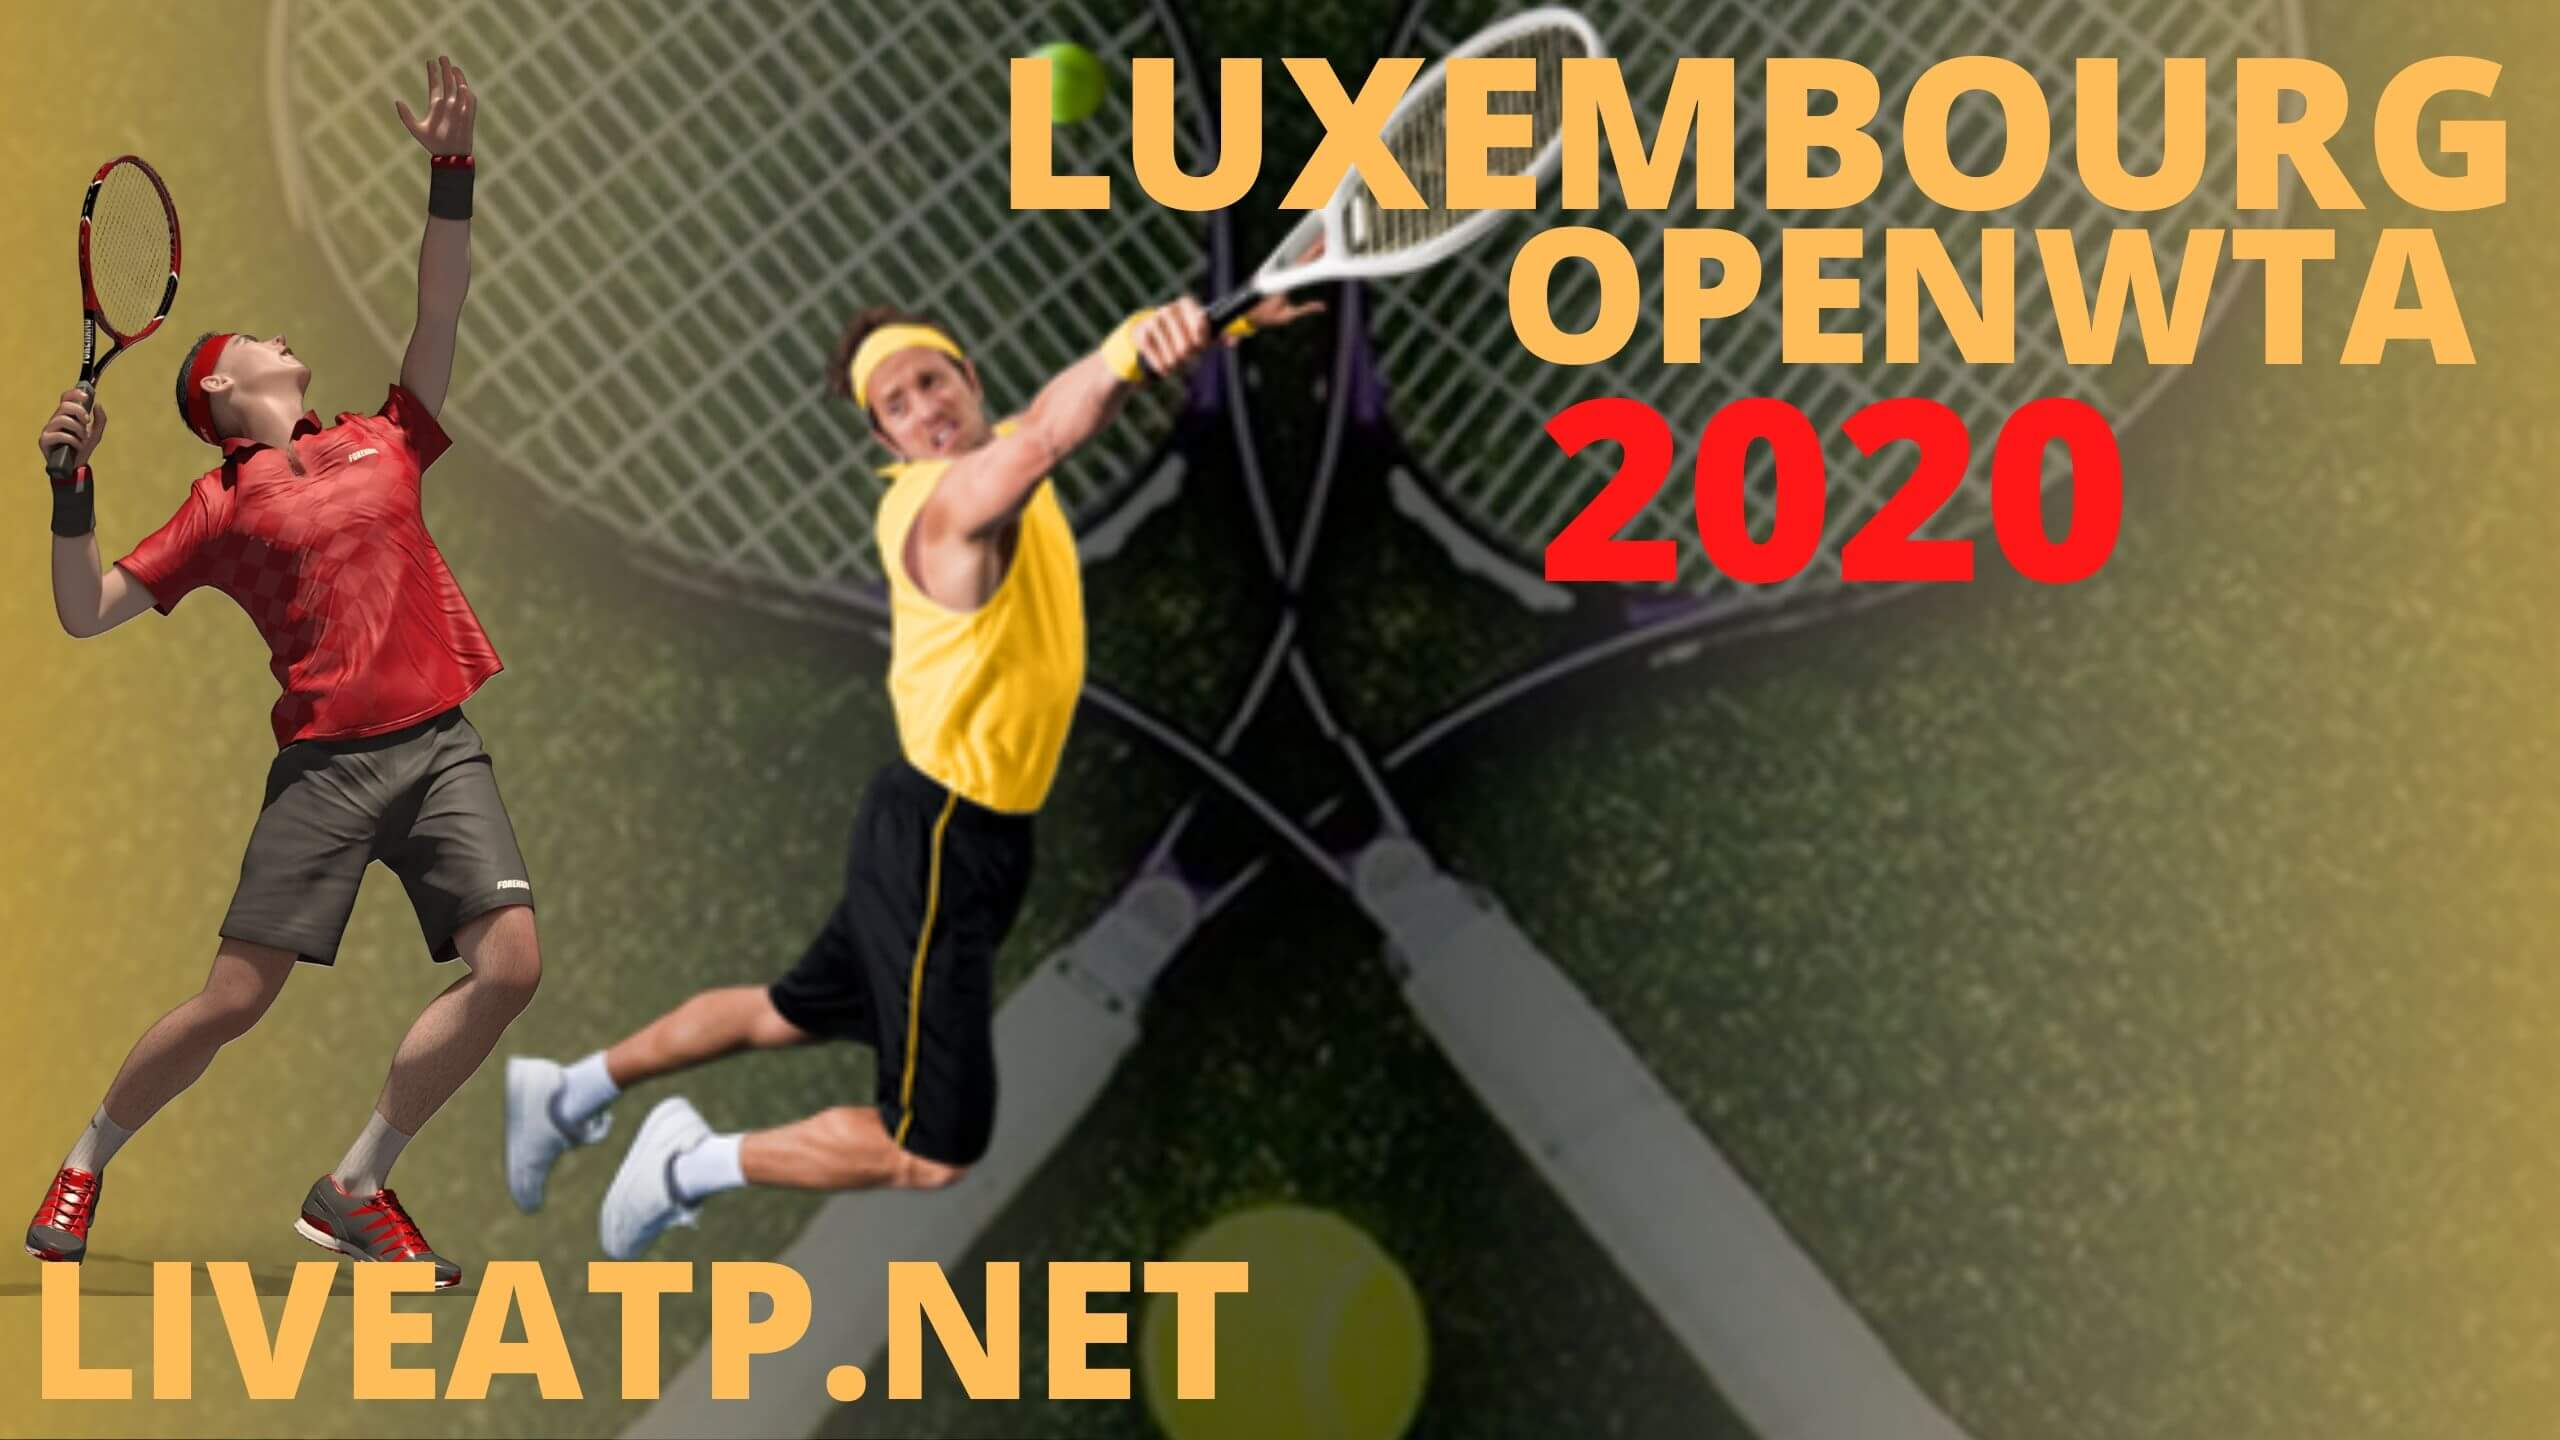 Luxembourg Open Live Stream 2020 | Day 1